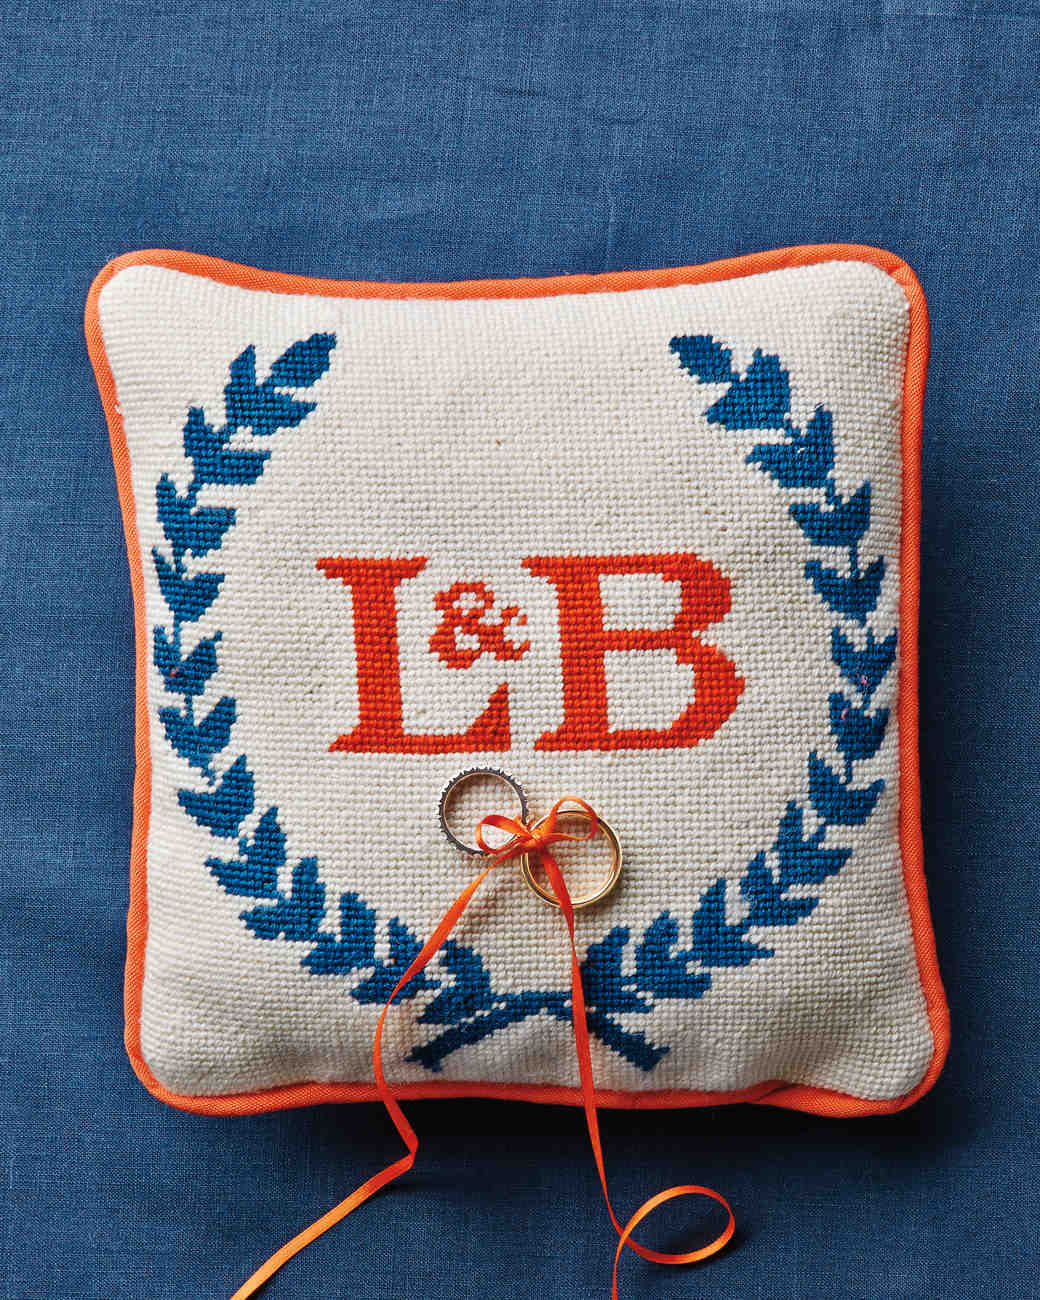 wedding-ring-initials-crest-msw-05-23-13-ring-pillow-4308-1-md110142.jpg